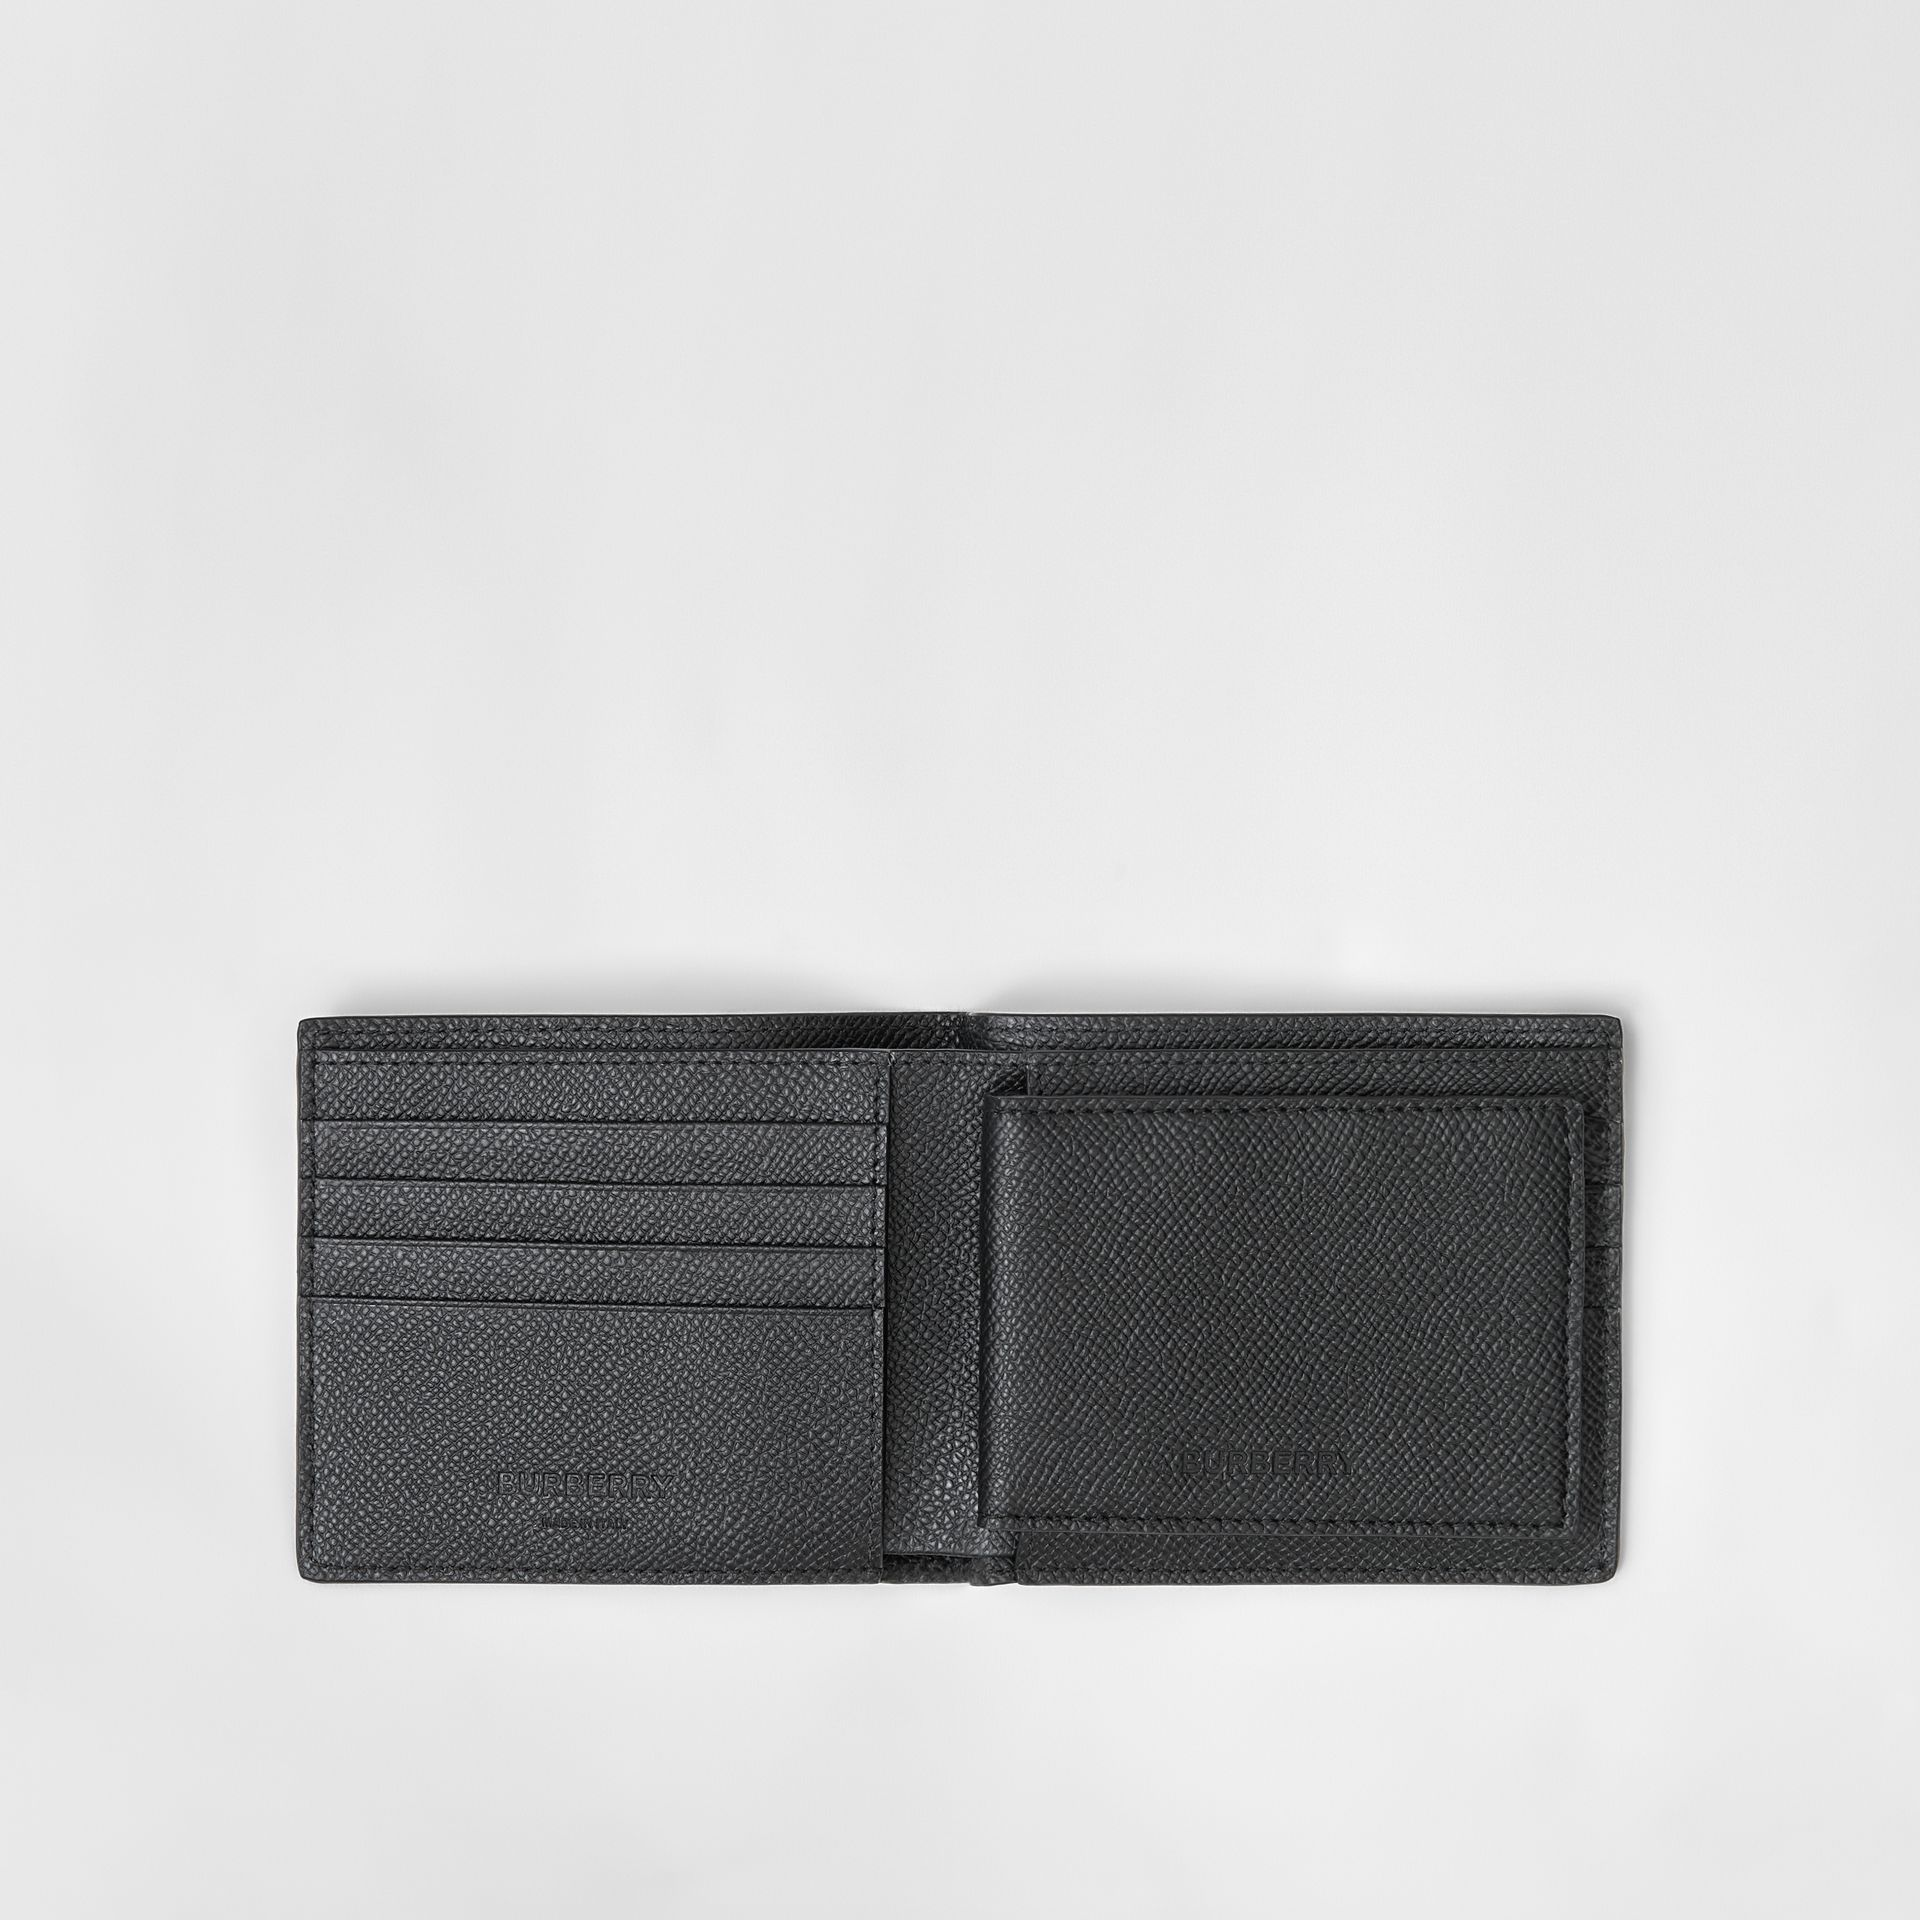 Grainy Leather Bifold Wallet with ID Card Case in Black - Men | Burberry United Kingdom - gallery image 2